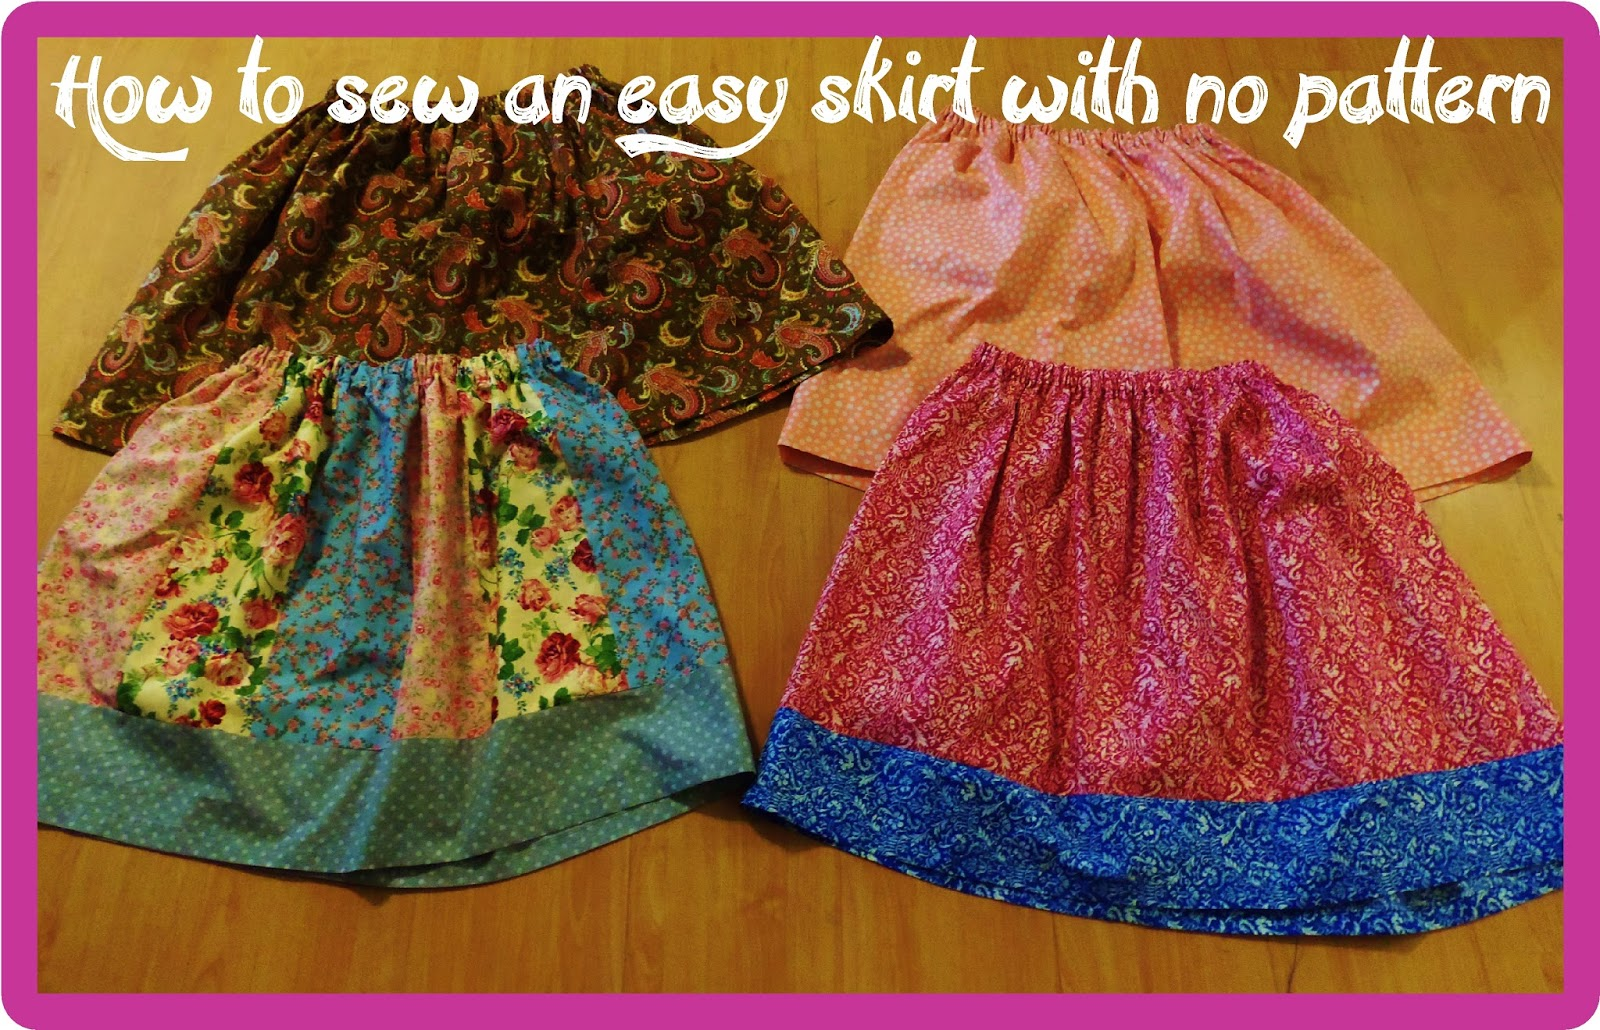 http://hollyshome-hollyshome-hollyshome.blogspot.com/2013/10/how-to-make-easy-skirt.html